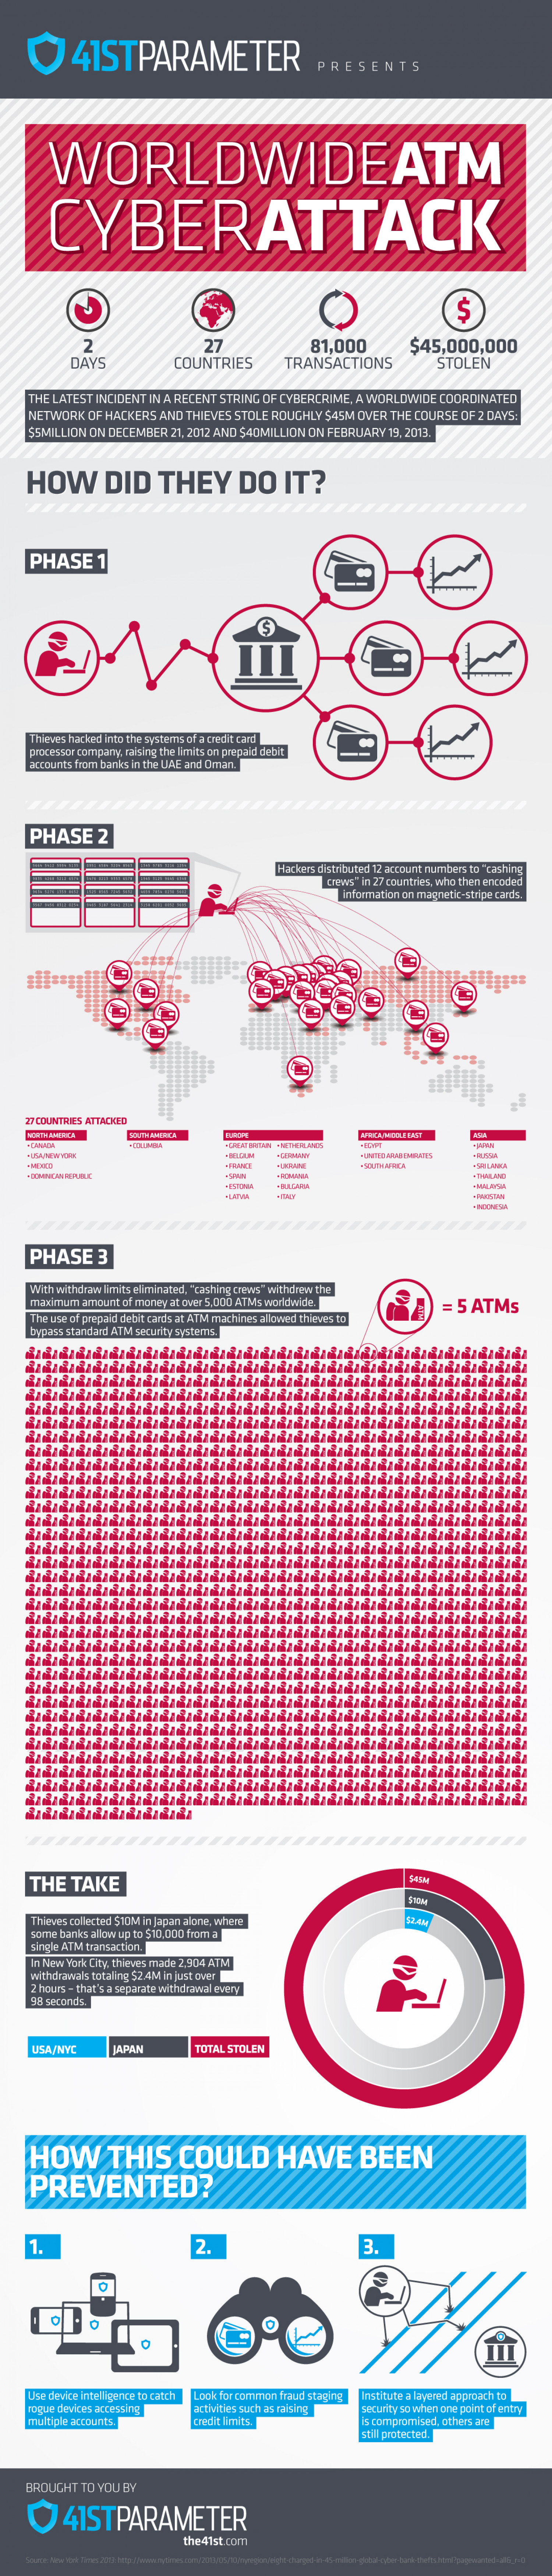 The $45M Heist Heard 'Round the World  Infographic